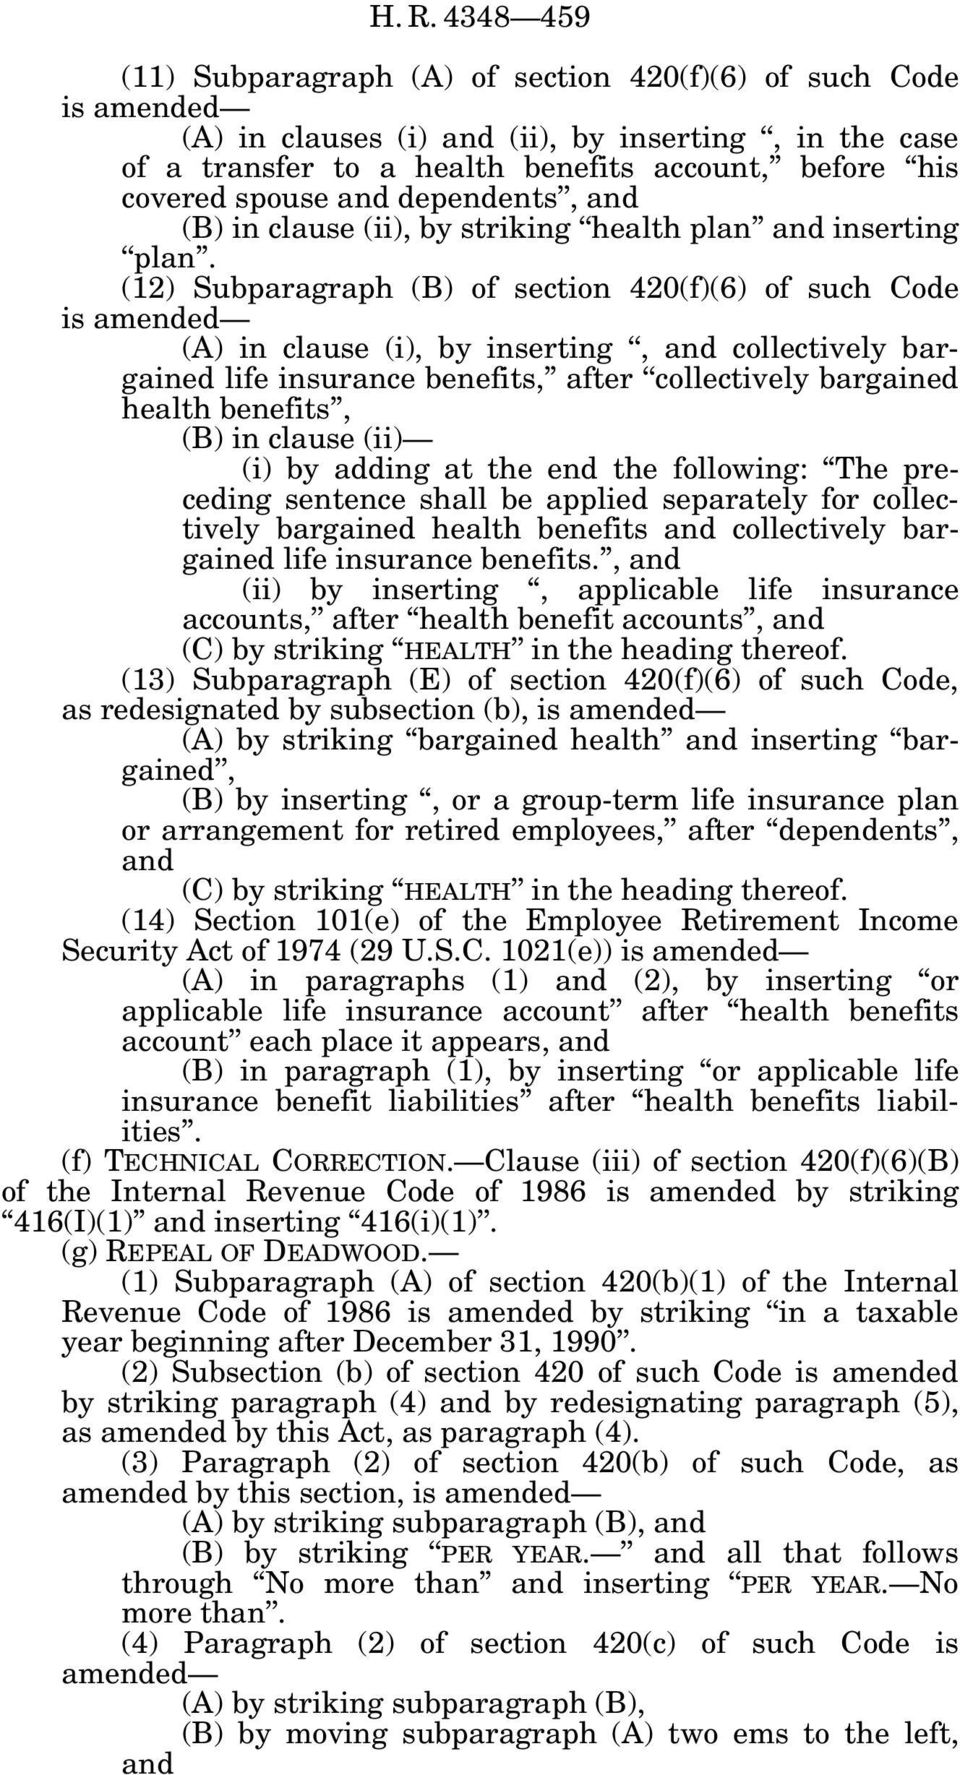 (12) Subparagraph (B) of section 420(f)(6) of such Code (A) in clause (i), by inserting, collectively bargained life insurance benefits, after collectively bargained health benefits, (B) in clause